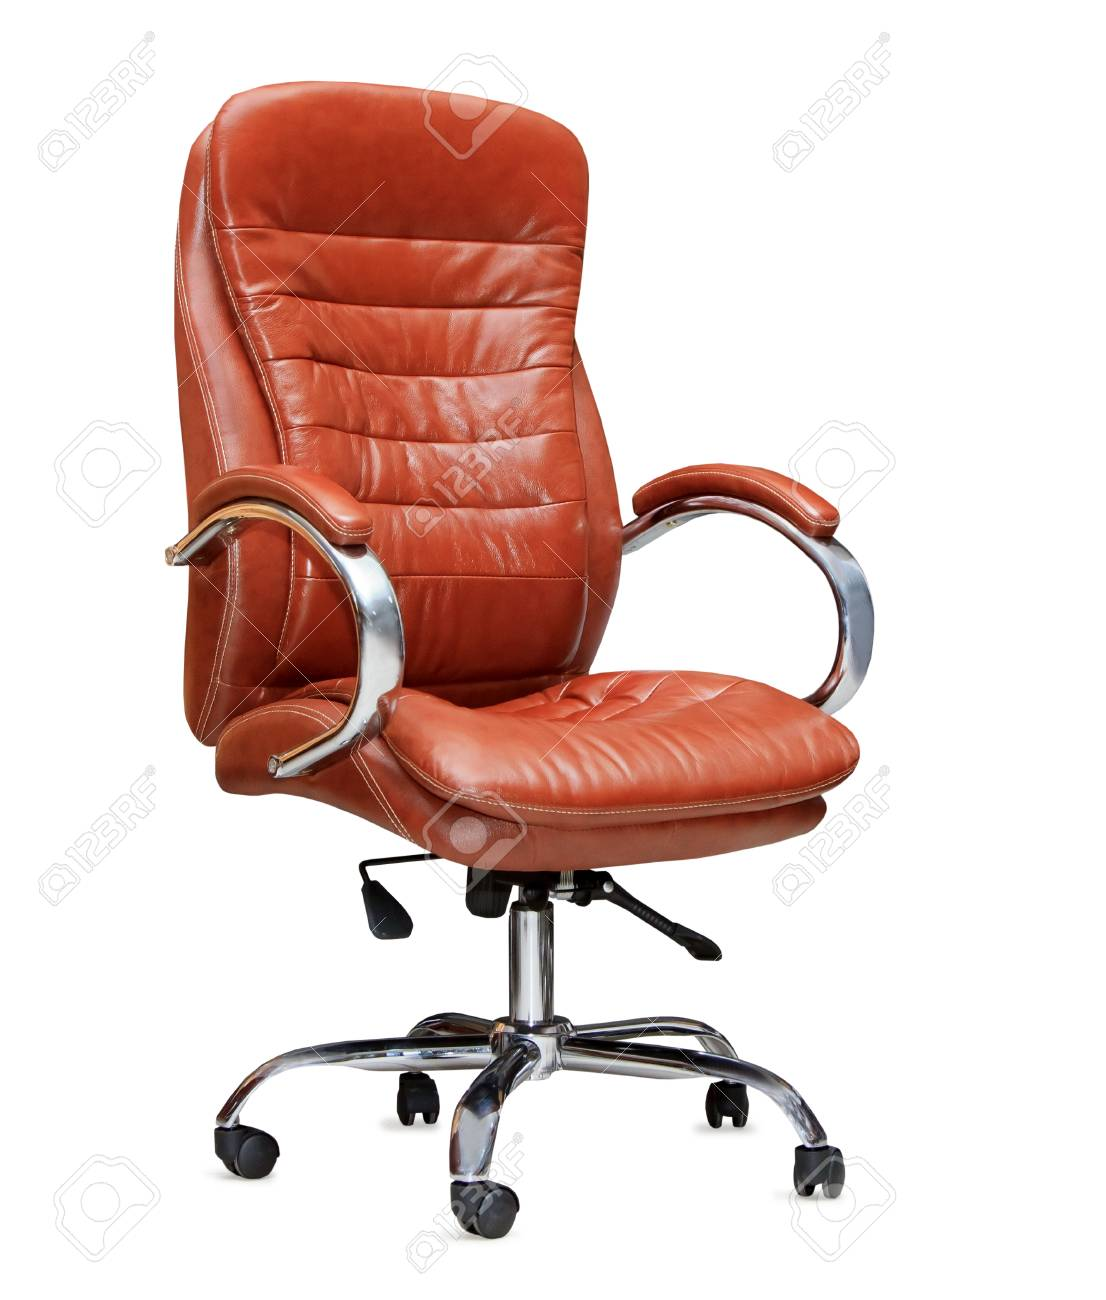 The Office Chair From Orange Leather Isolated Stock Photo Picture And Royalty Free Image Image 22635083